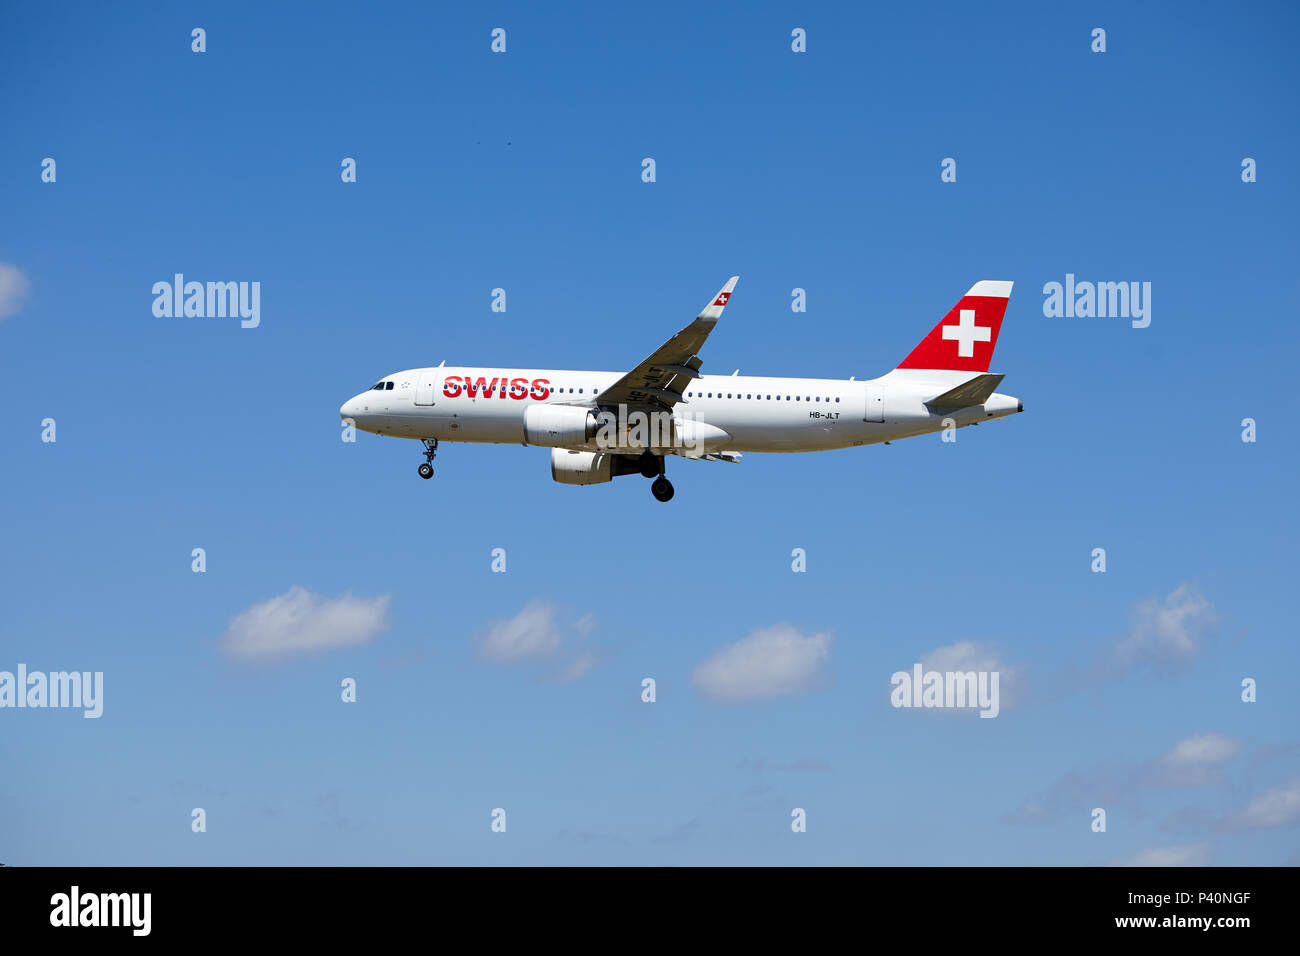 A Swiss Air Airbus A320-214 aircraft, registration number HB-JLT, nickname Grenchen, approaching a landing. - Stock Image